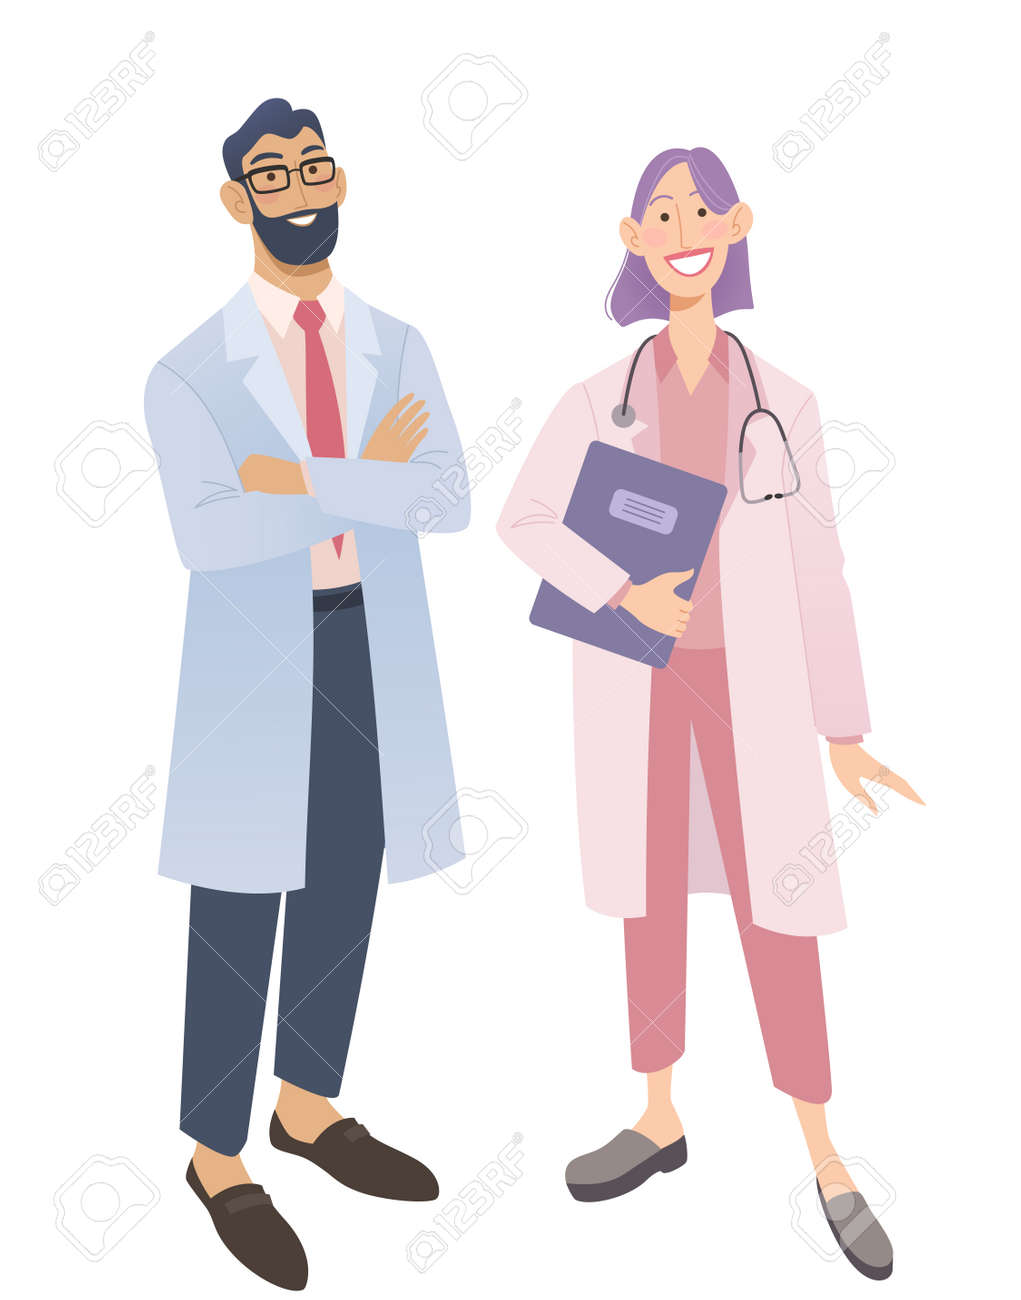 Friendly doctors in medical uniform. Smiling man and woman physicians. Friendly therapist and nurse. Isolated on white vector illustration. - 164624866